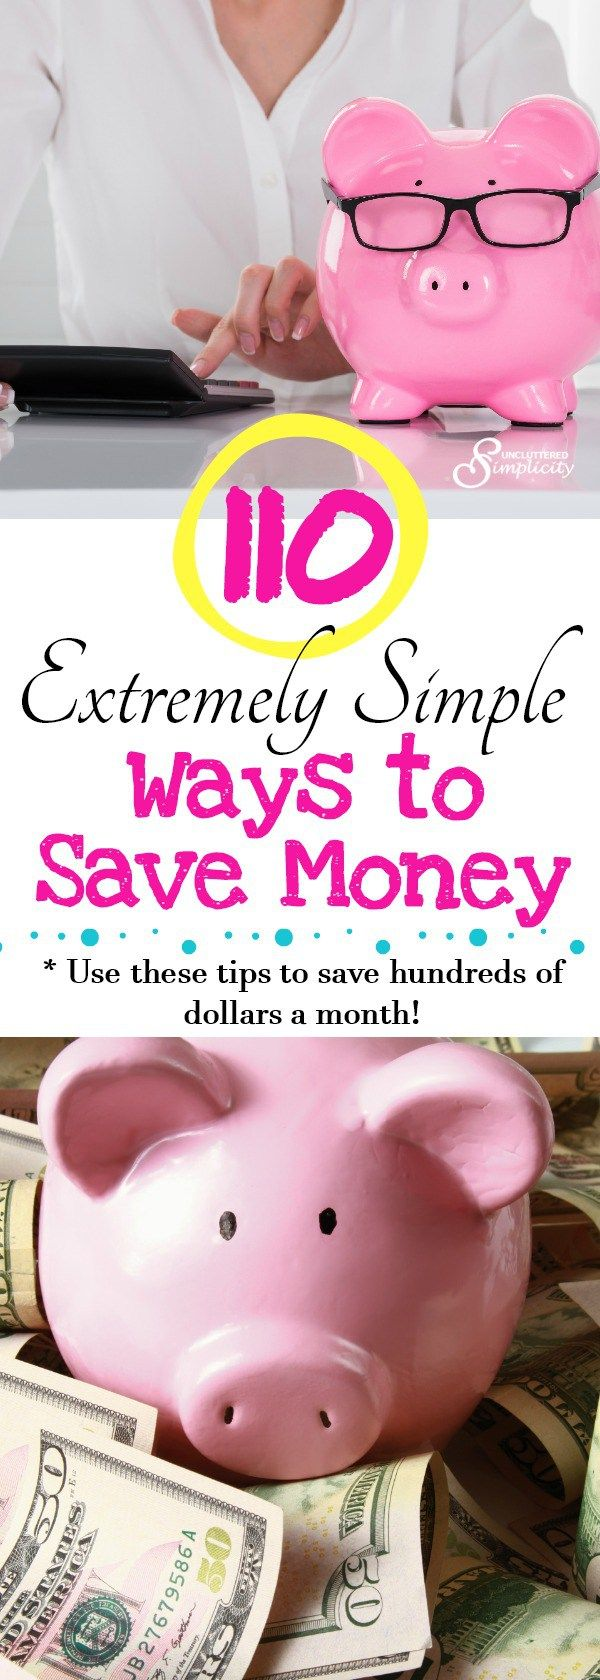 save money | money saving tips | how to save on household items | frugal tips | budgeting | easy ways to save money